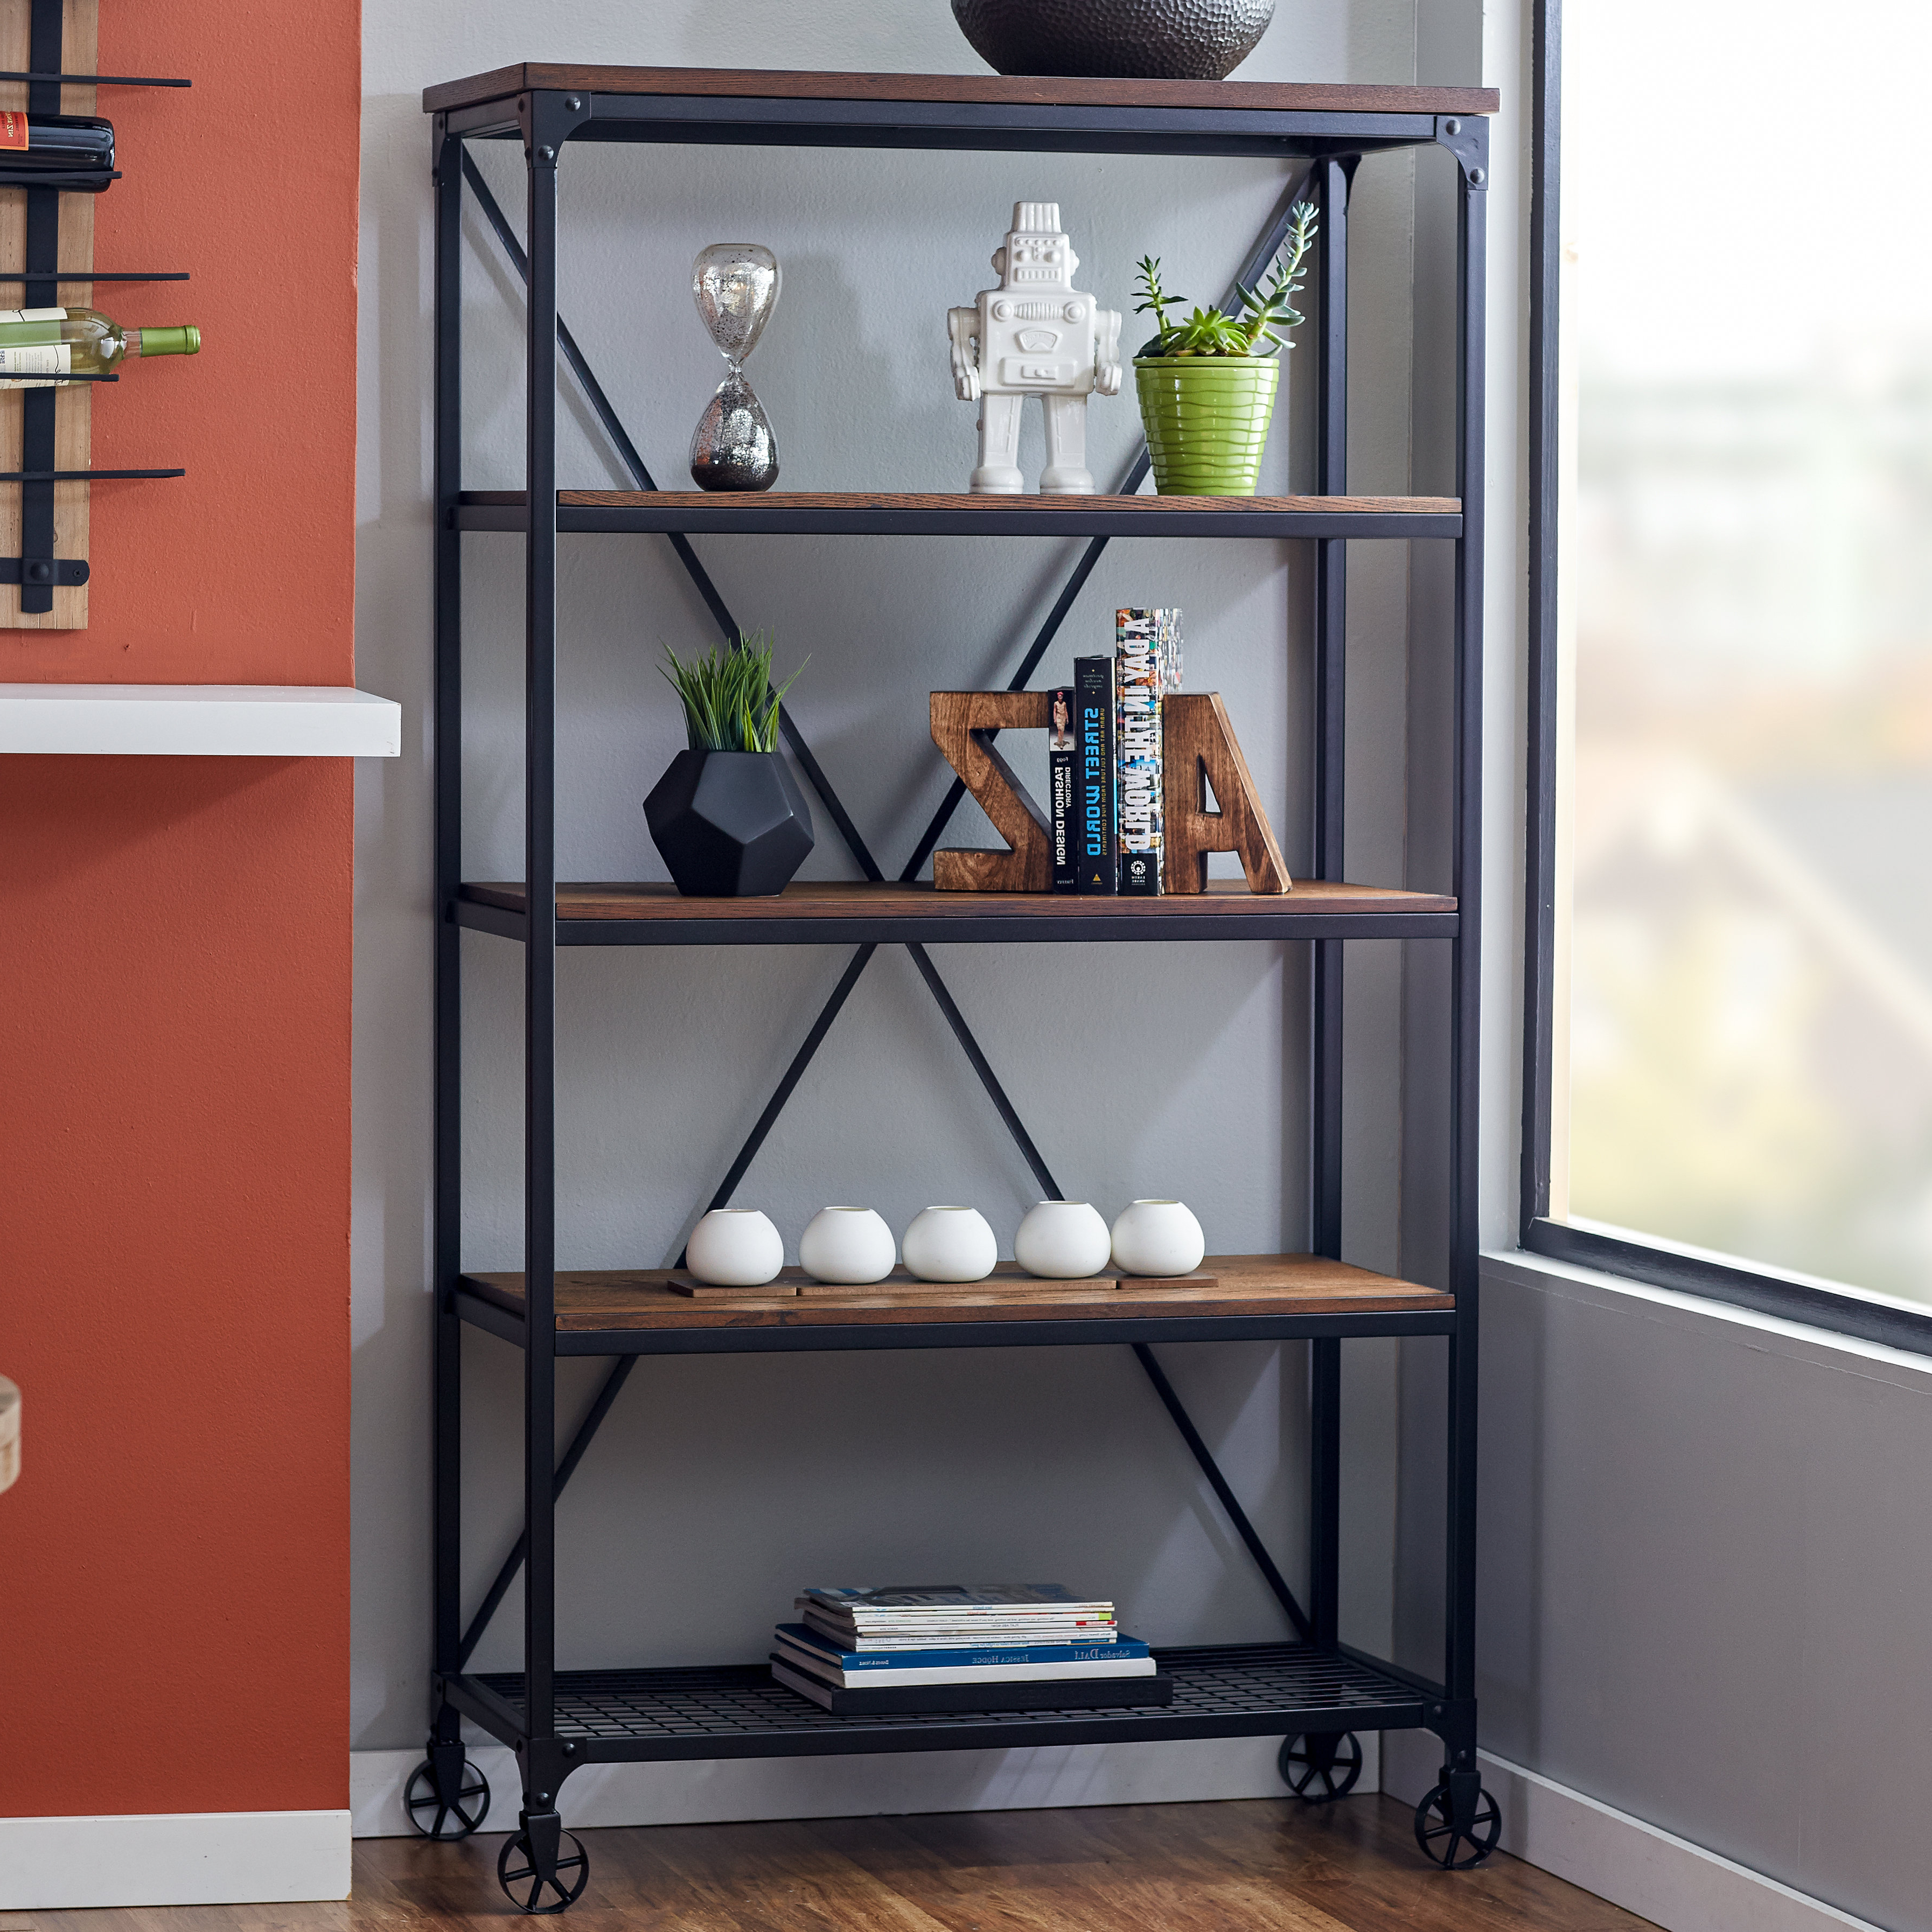 Widely Used Moriann Etagere Bookcases Intended For Kilmersdon Etagere Bookcase (View 20 of 20)